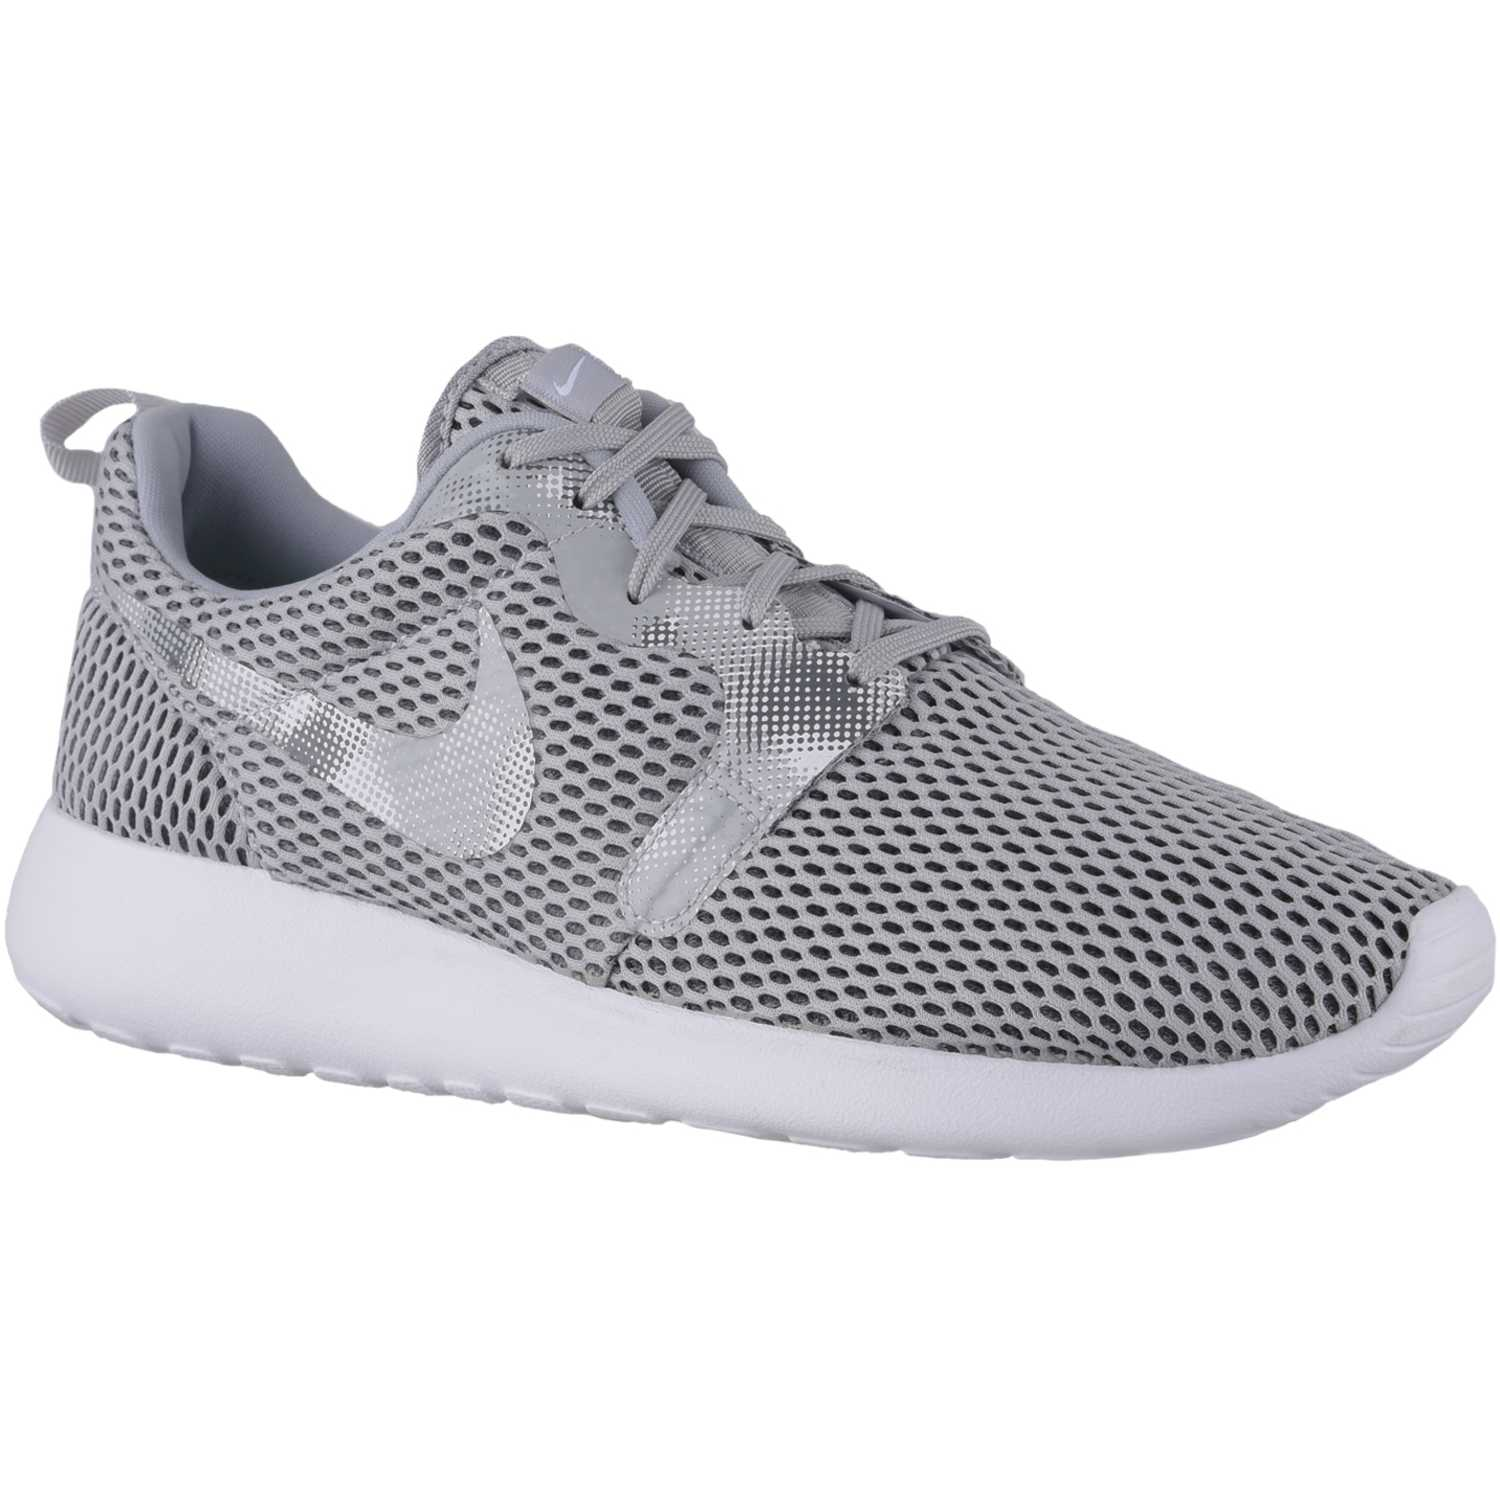 Ballerinas de Mujer Nike Gris / blanco roshe one hyp br gpx